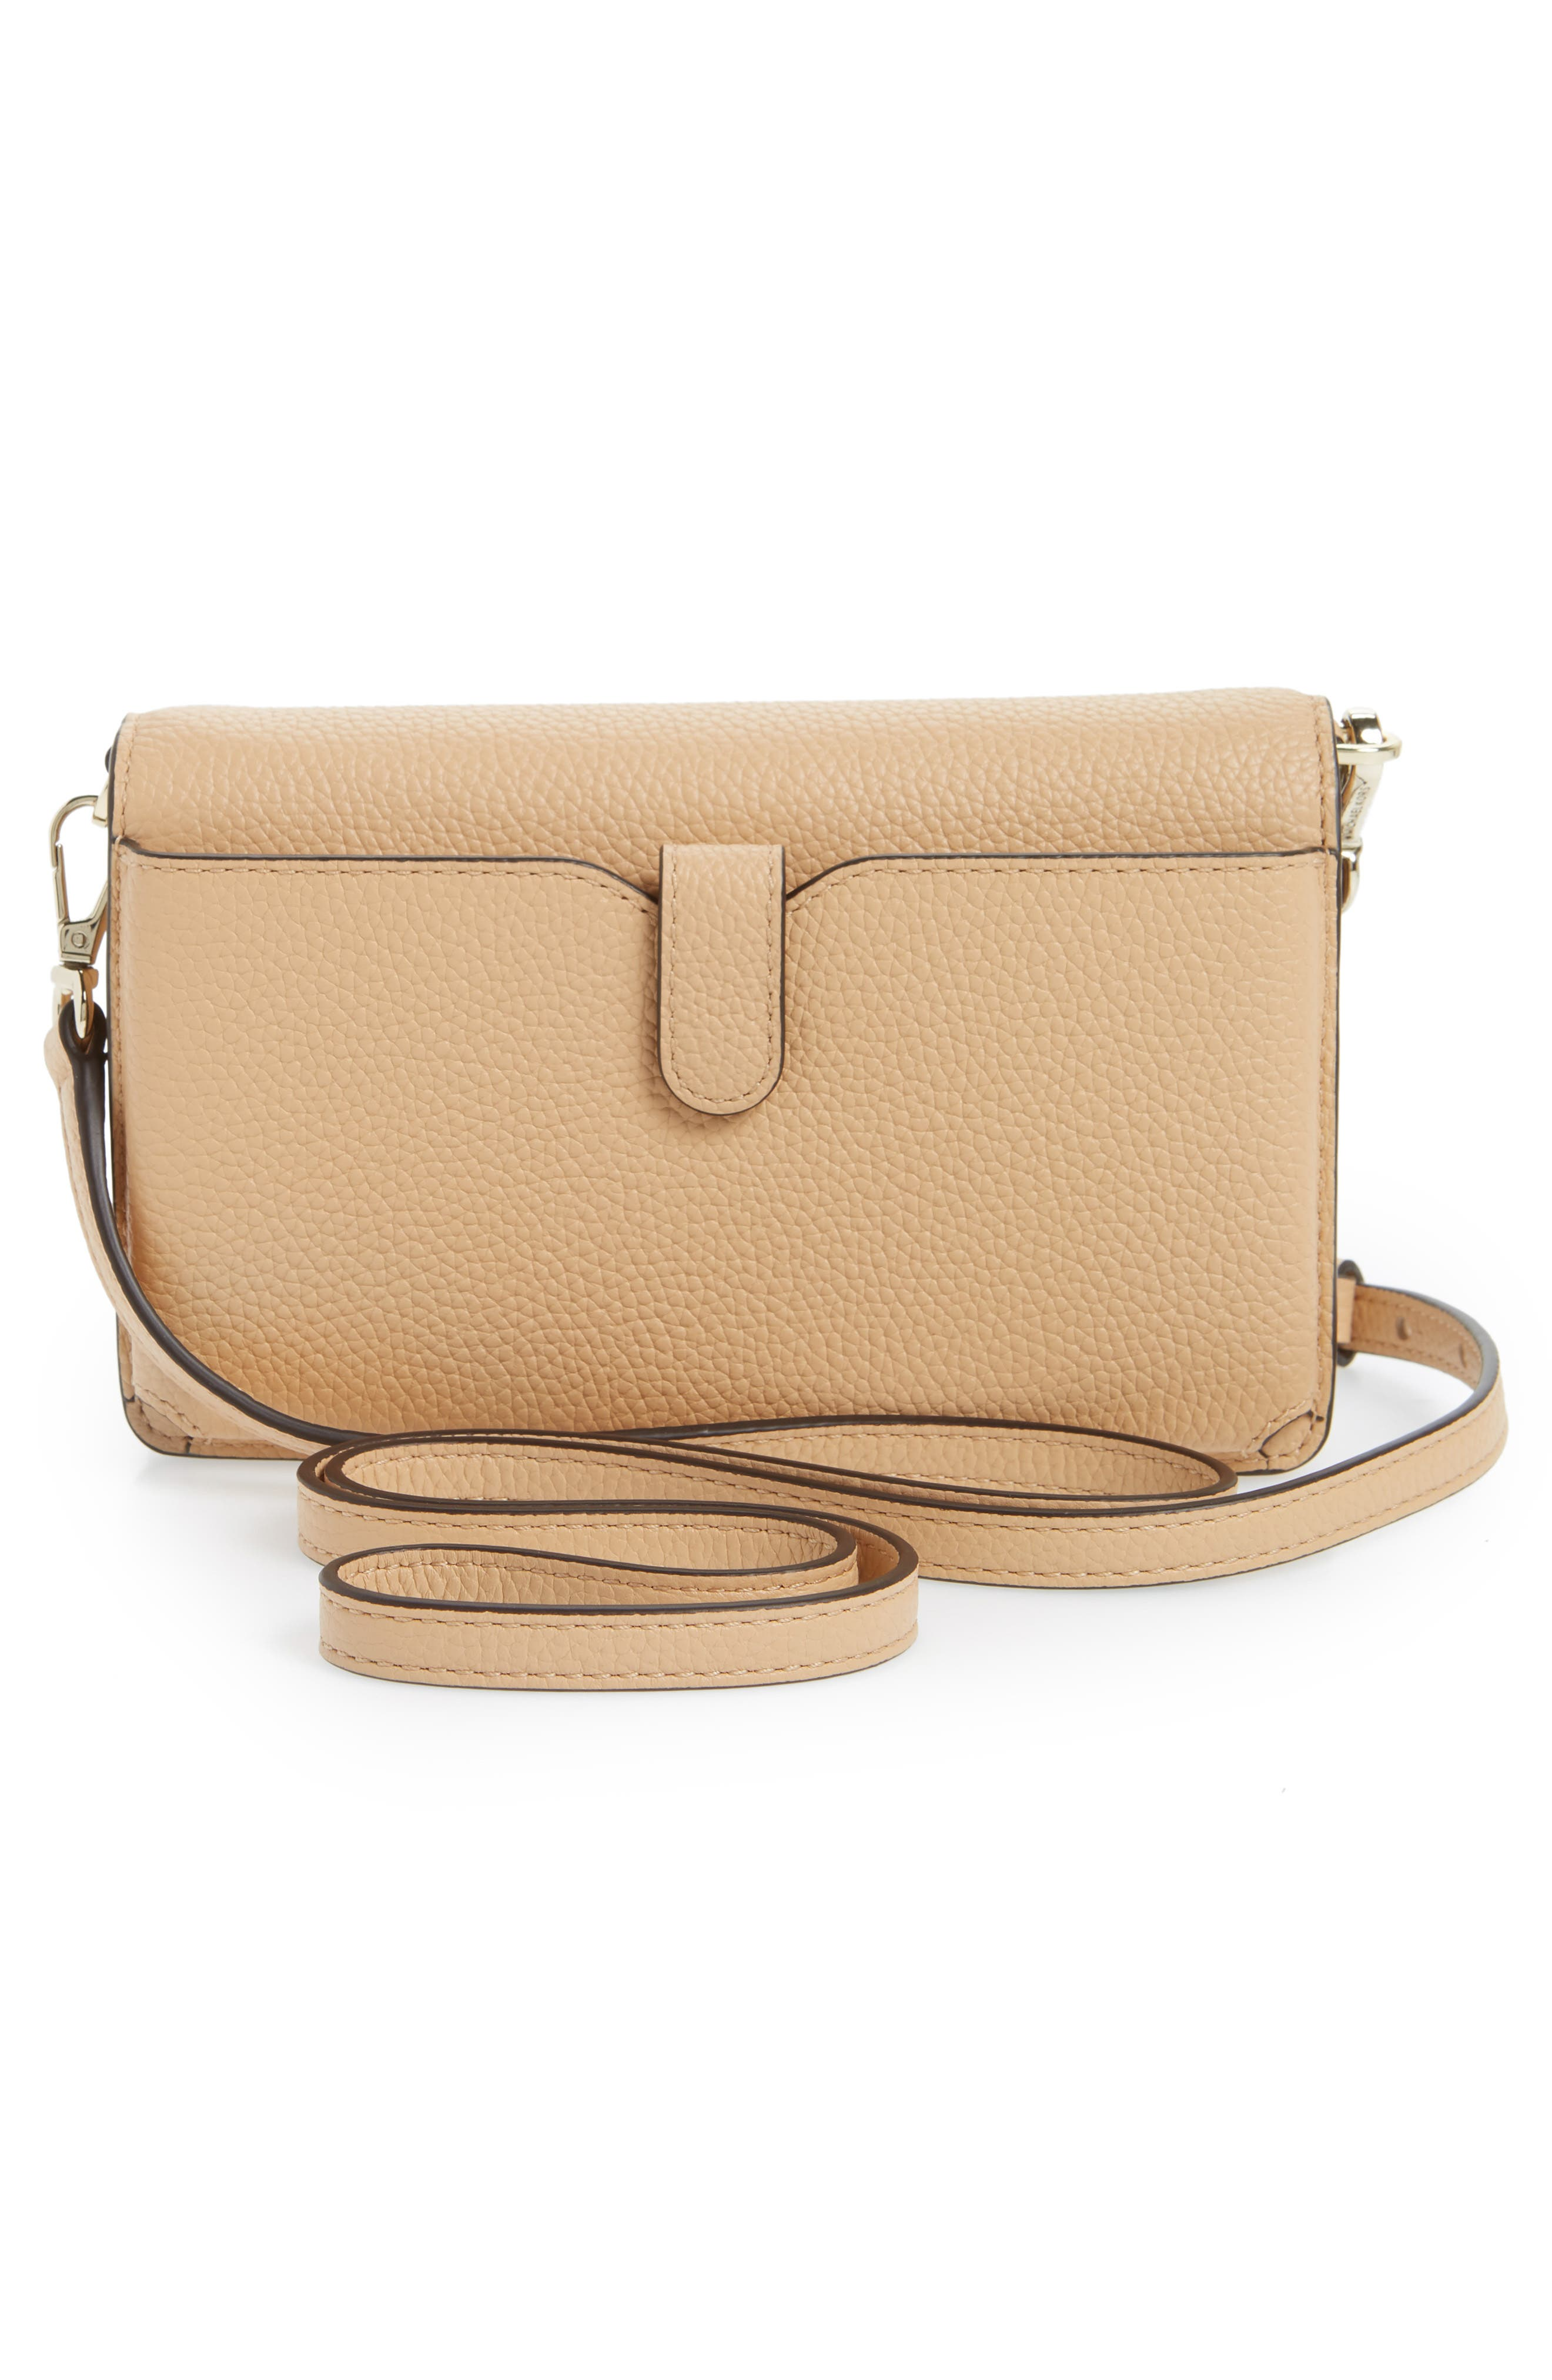 Leather Crossbody Phone Wallet,                             Alternate thumbnail 3, color,                             250